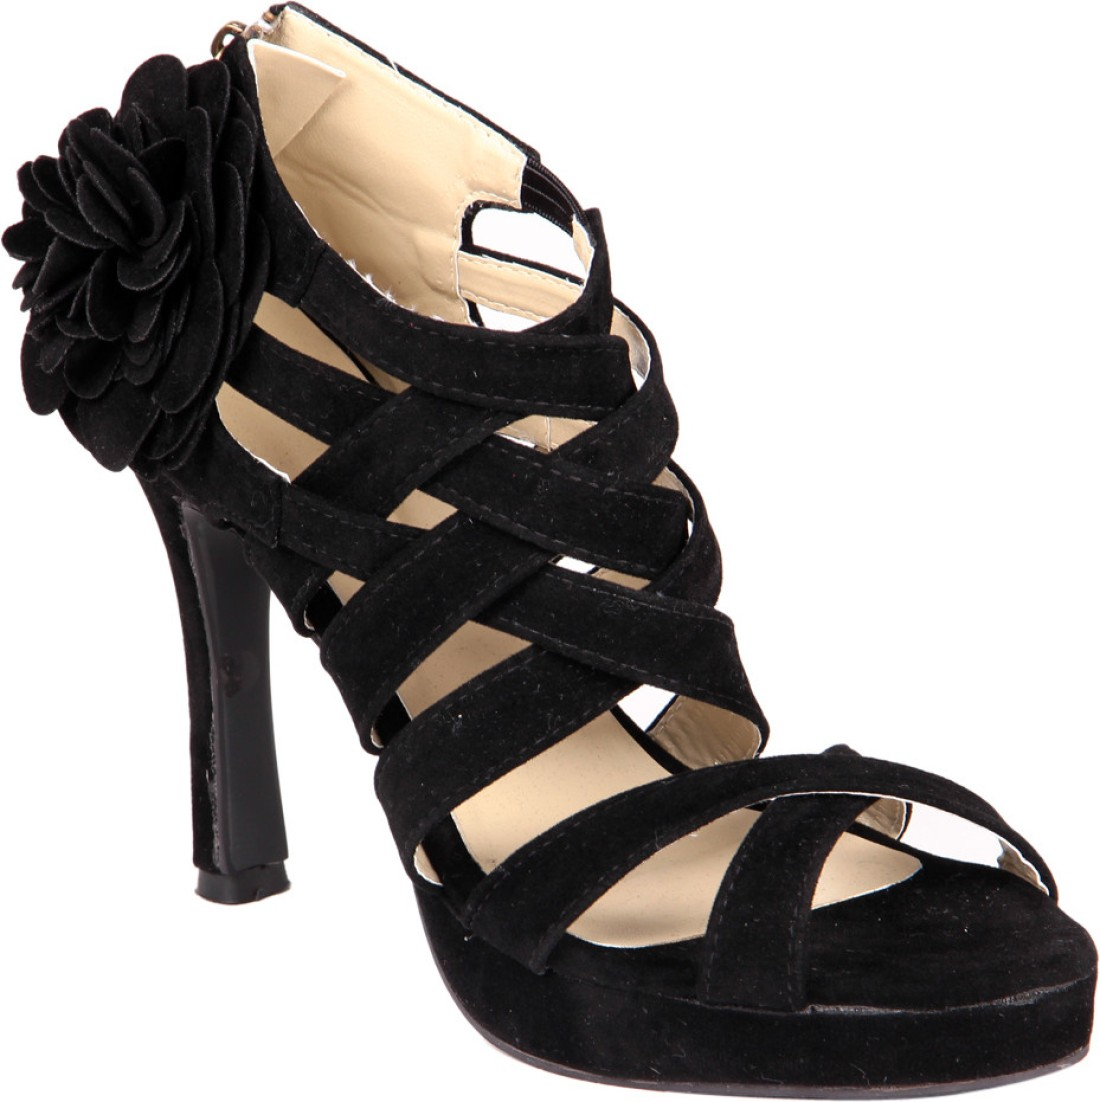 Soft & Sleek Black Suede Flower Girls Heels - Buy Black ...